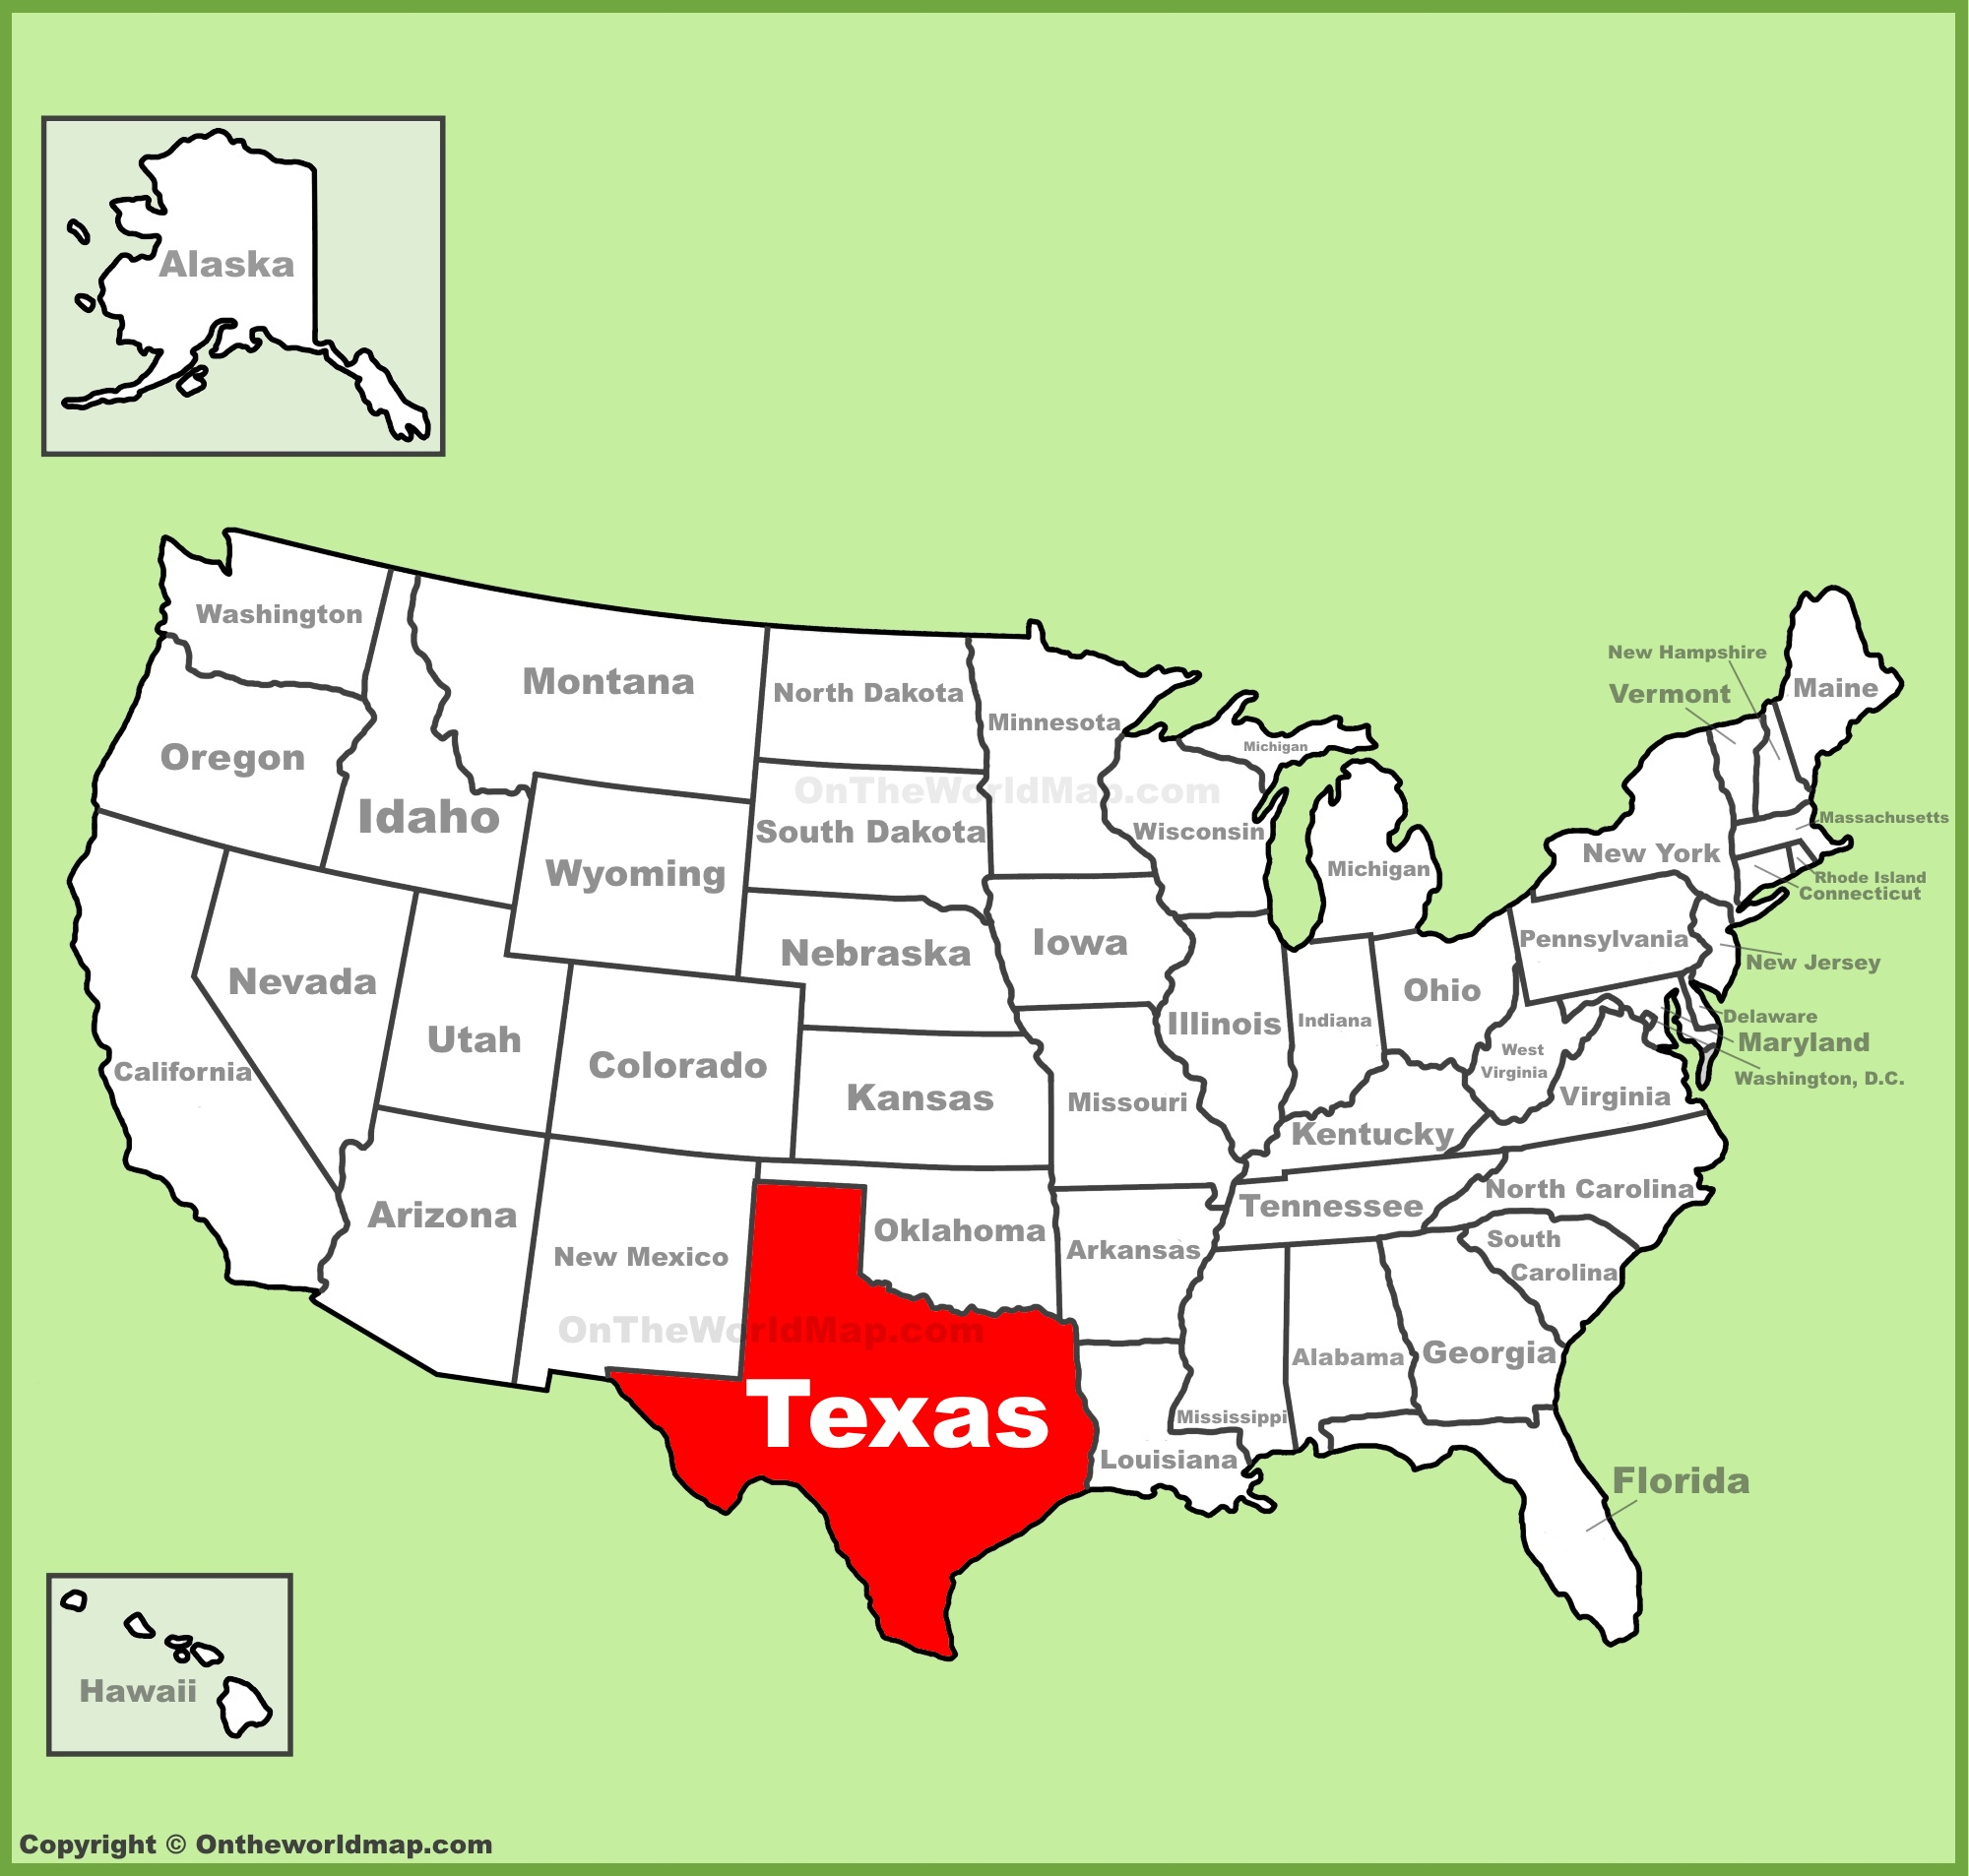 Map Of Texas Us.Texas State Maps Usa Maps Of Texas Tx